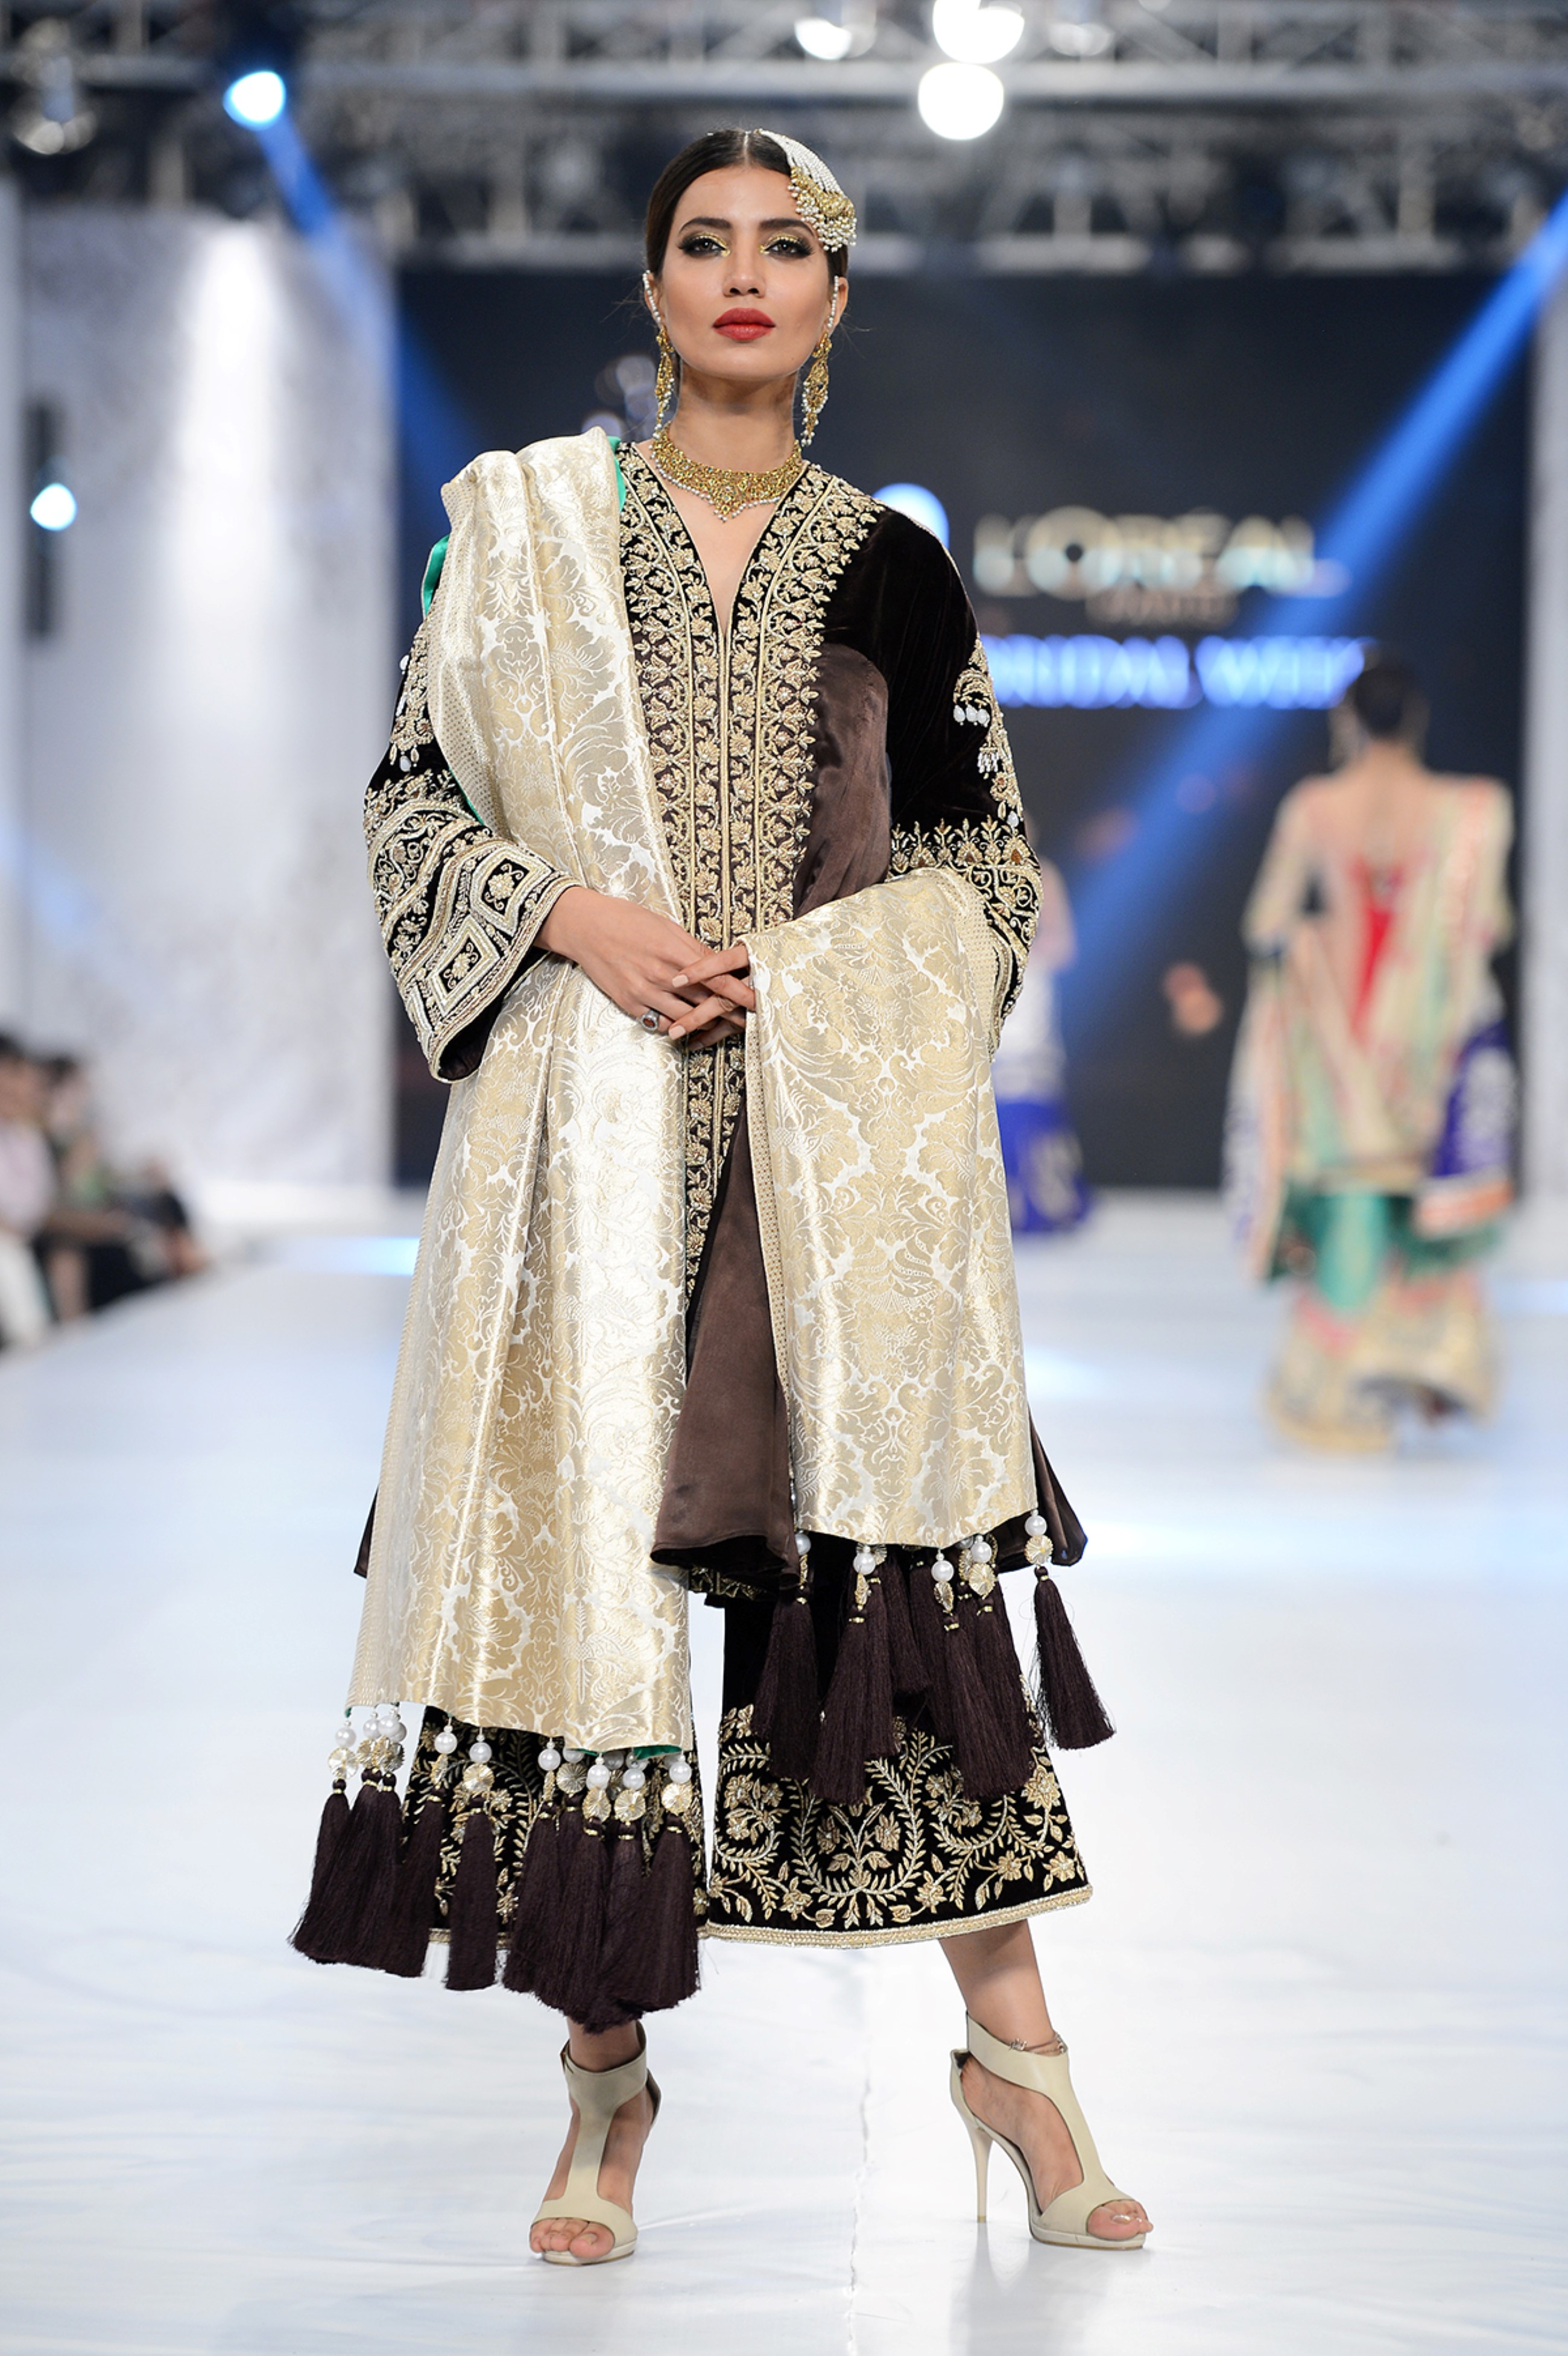 The House of Kamiar Rokni - PFDC L'Oréal Paris Bridal Week - Photography by Faisal Farooqui, Dragonfly